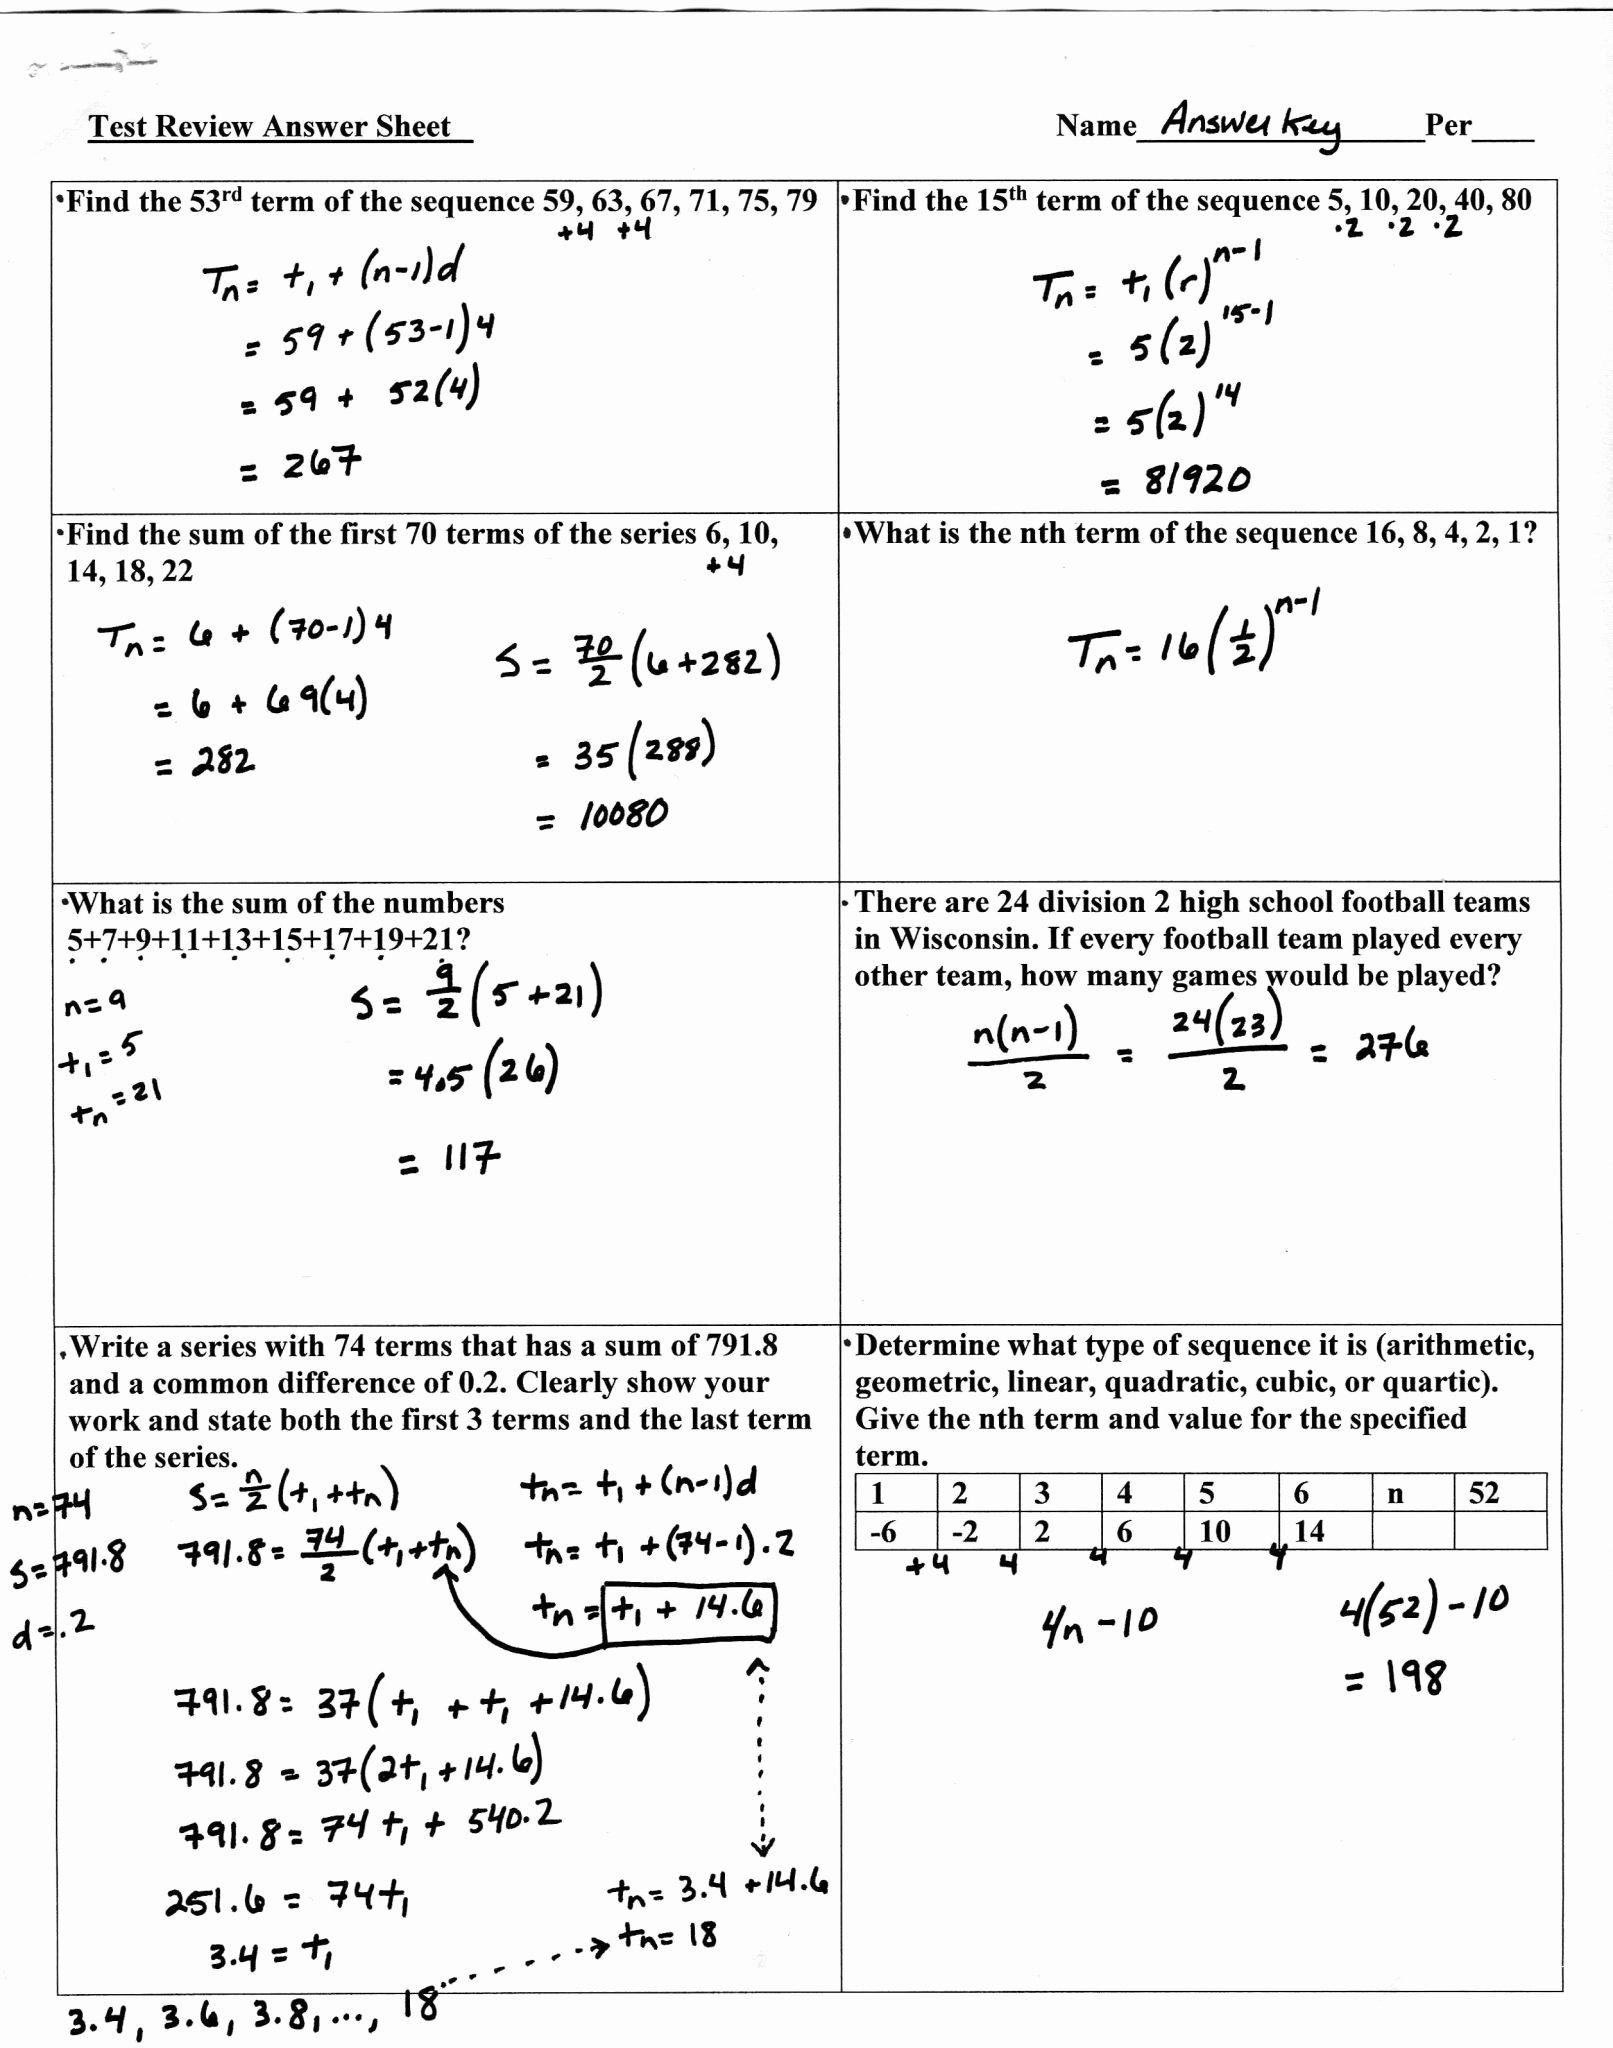 Sequences and Series Worksheet Answers Inspirational Geometric Sequences and Series Worksheet Answers